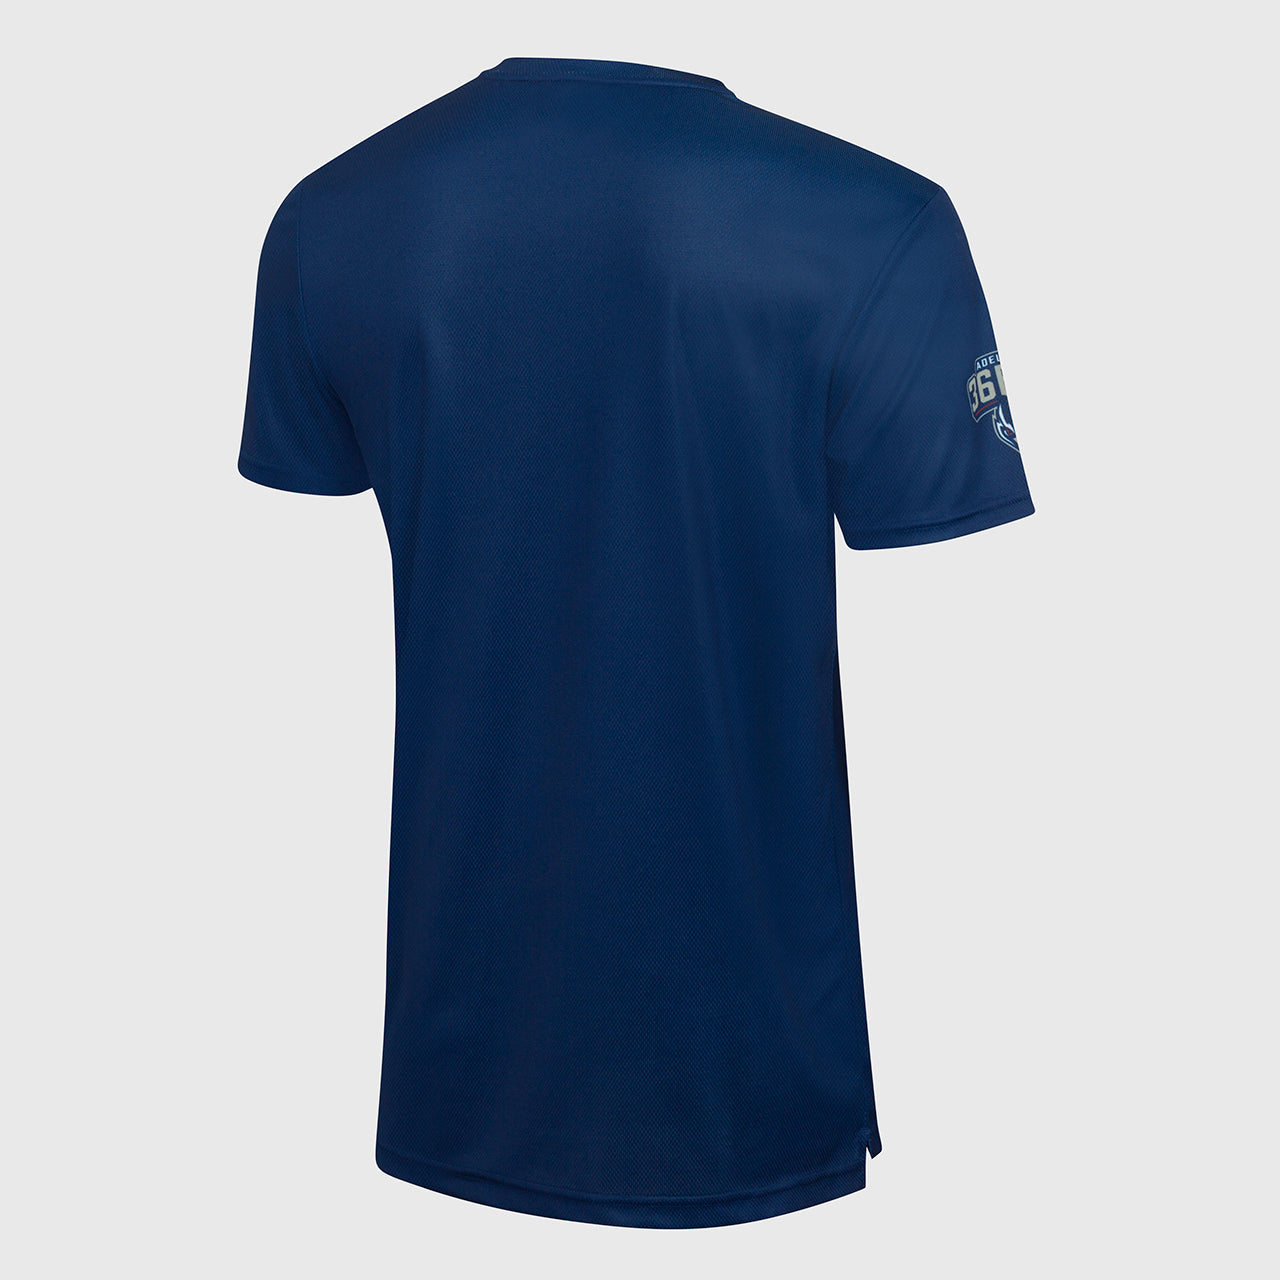 Adelaide 36ers 18/19 Short Sleeve Training T- Shirt